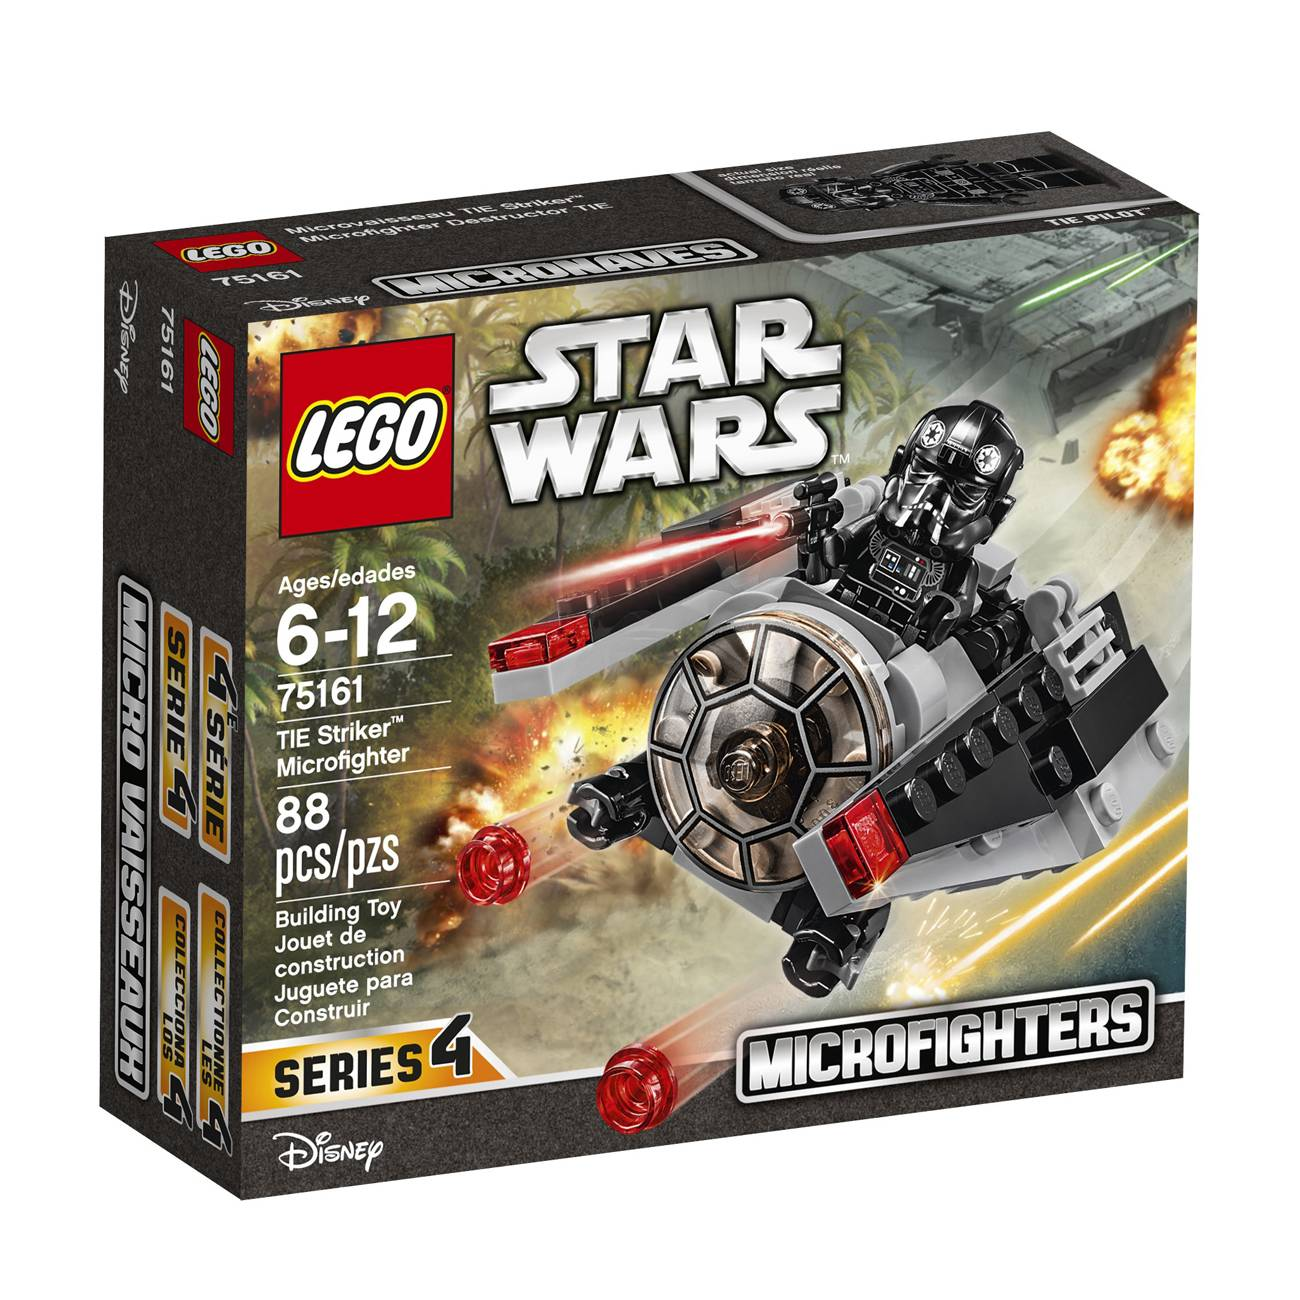 STAR WARS 75161 TIE STRIKER MICROFIGHTER